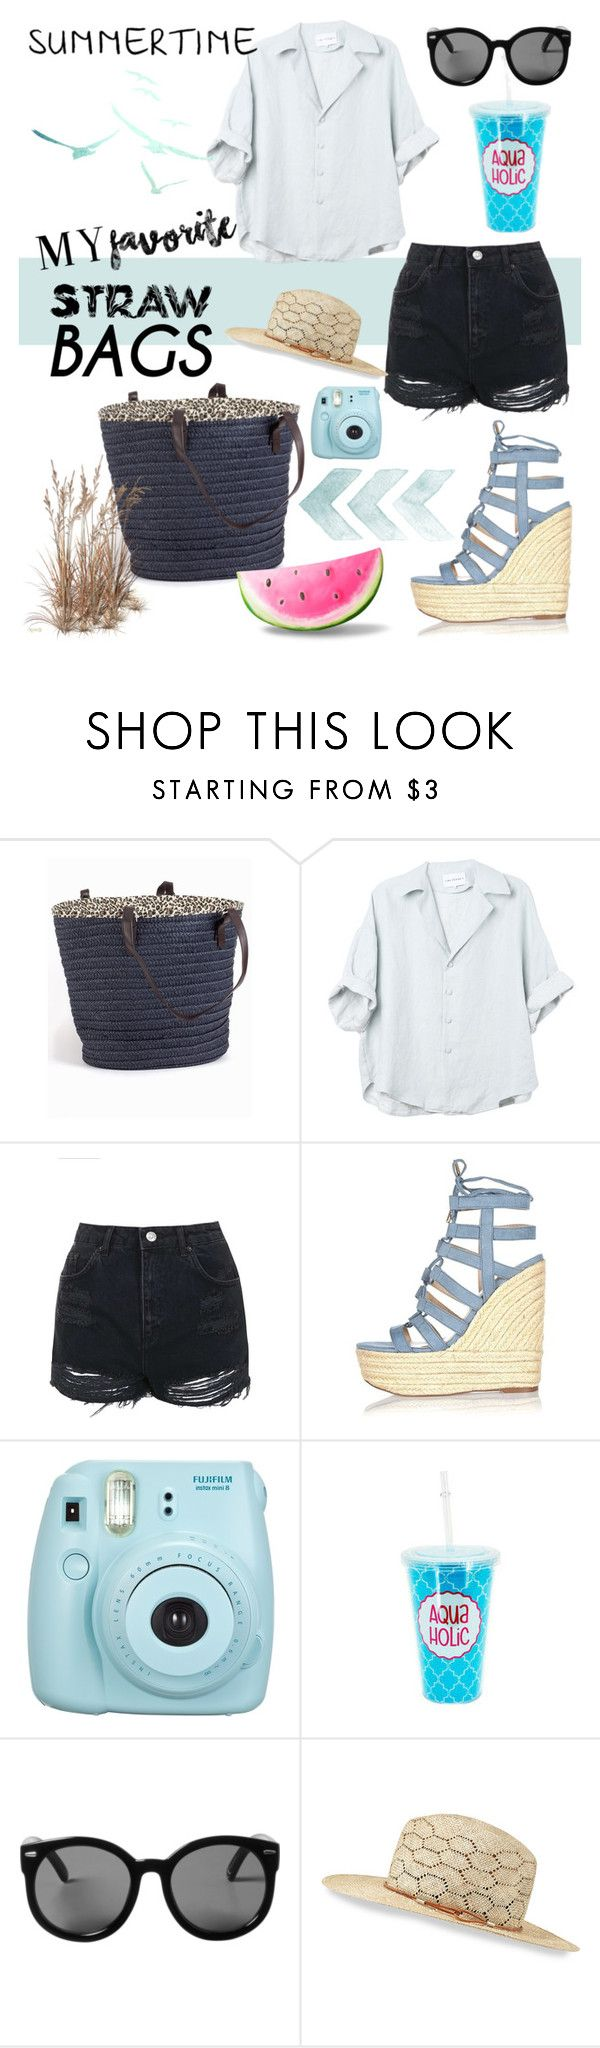 """""""Summer"""" by ceridwen86 ❤ liked on Polyvore featuring Topshop, River Island, Monki, rag & bone and strawbags"""